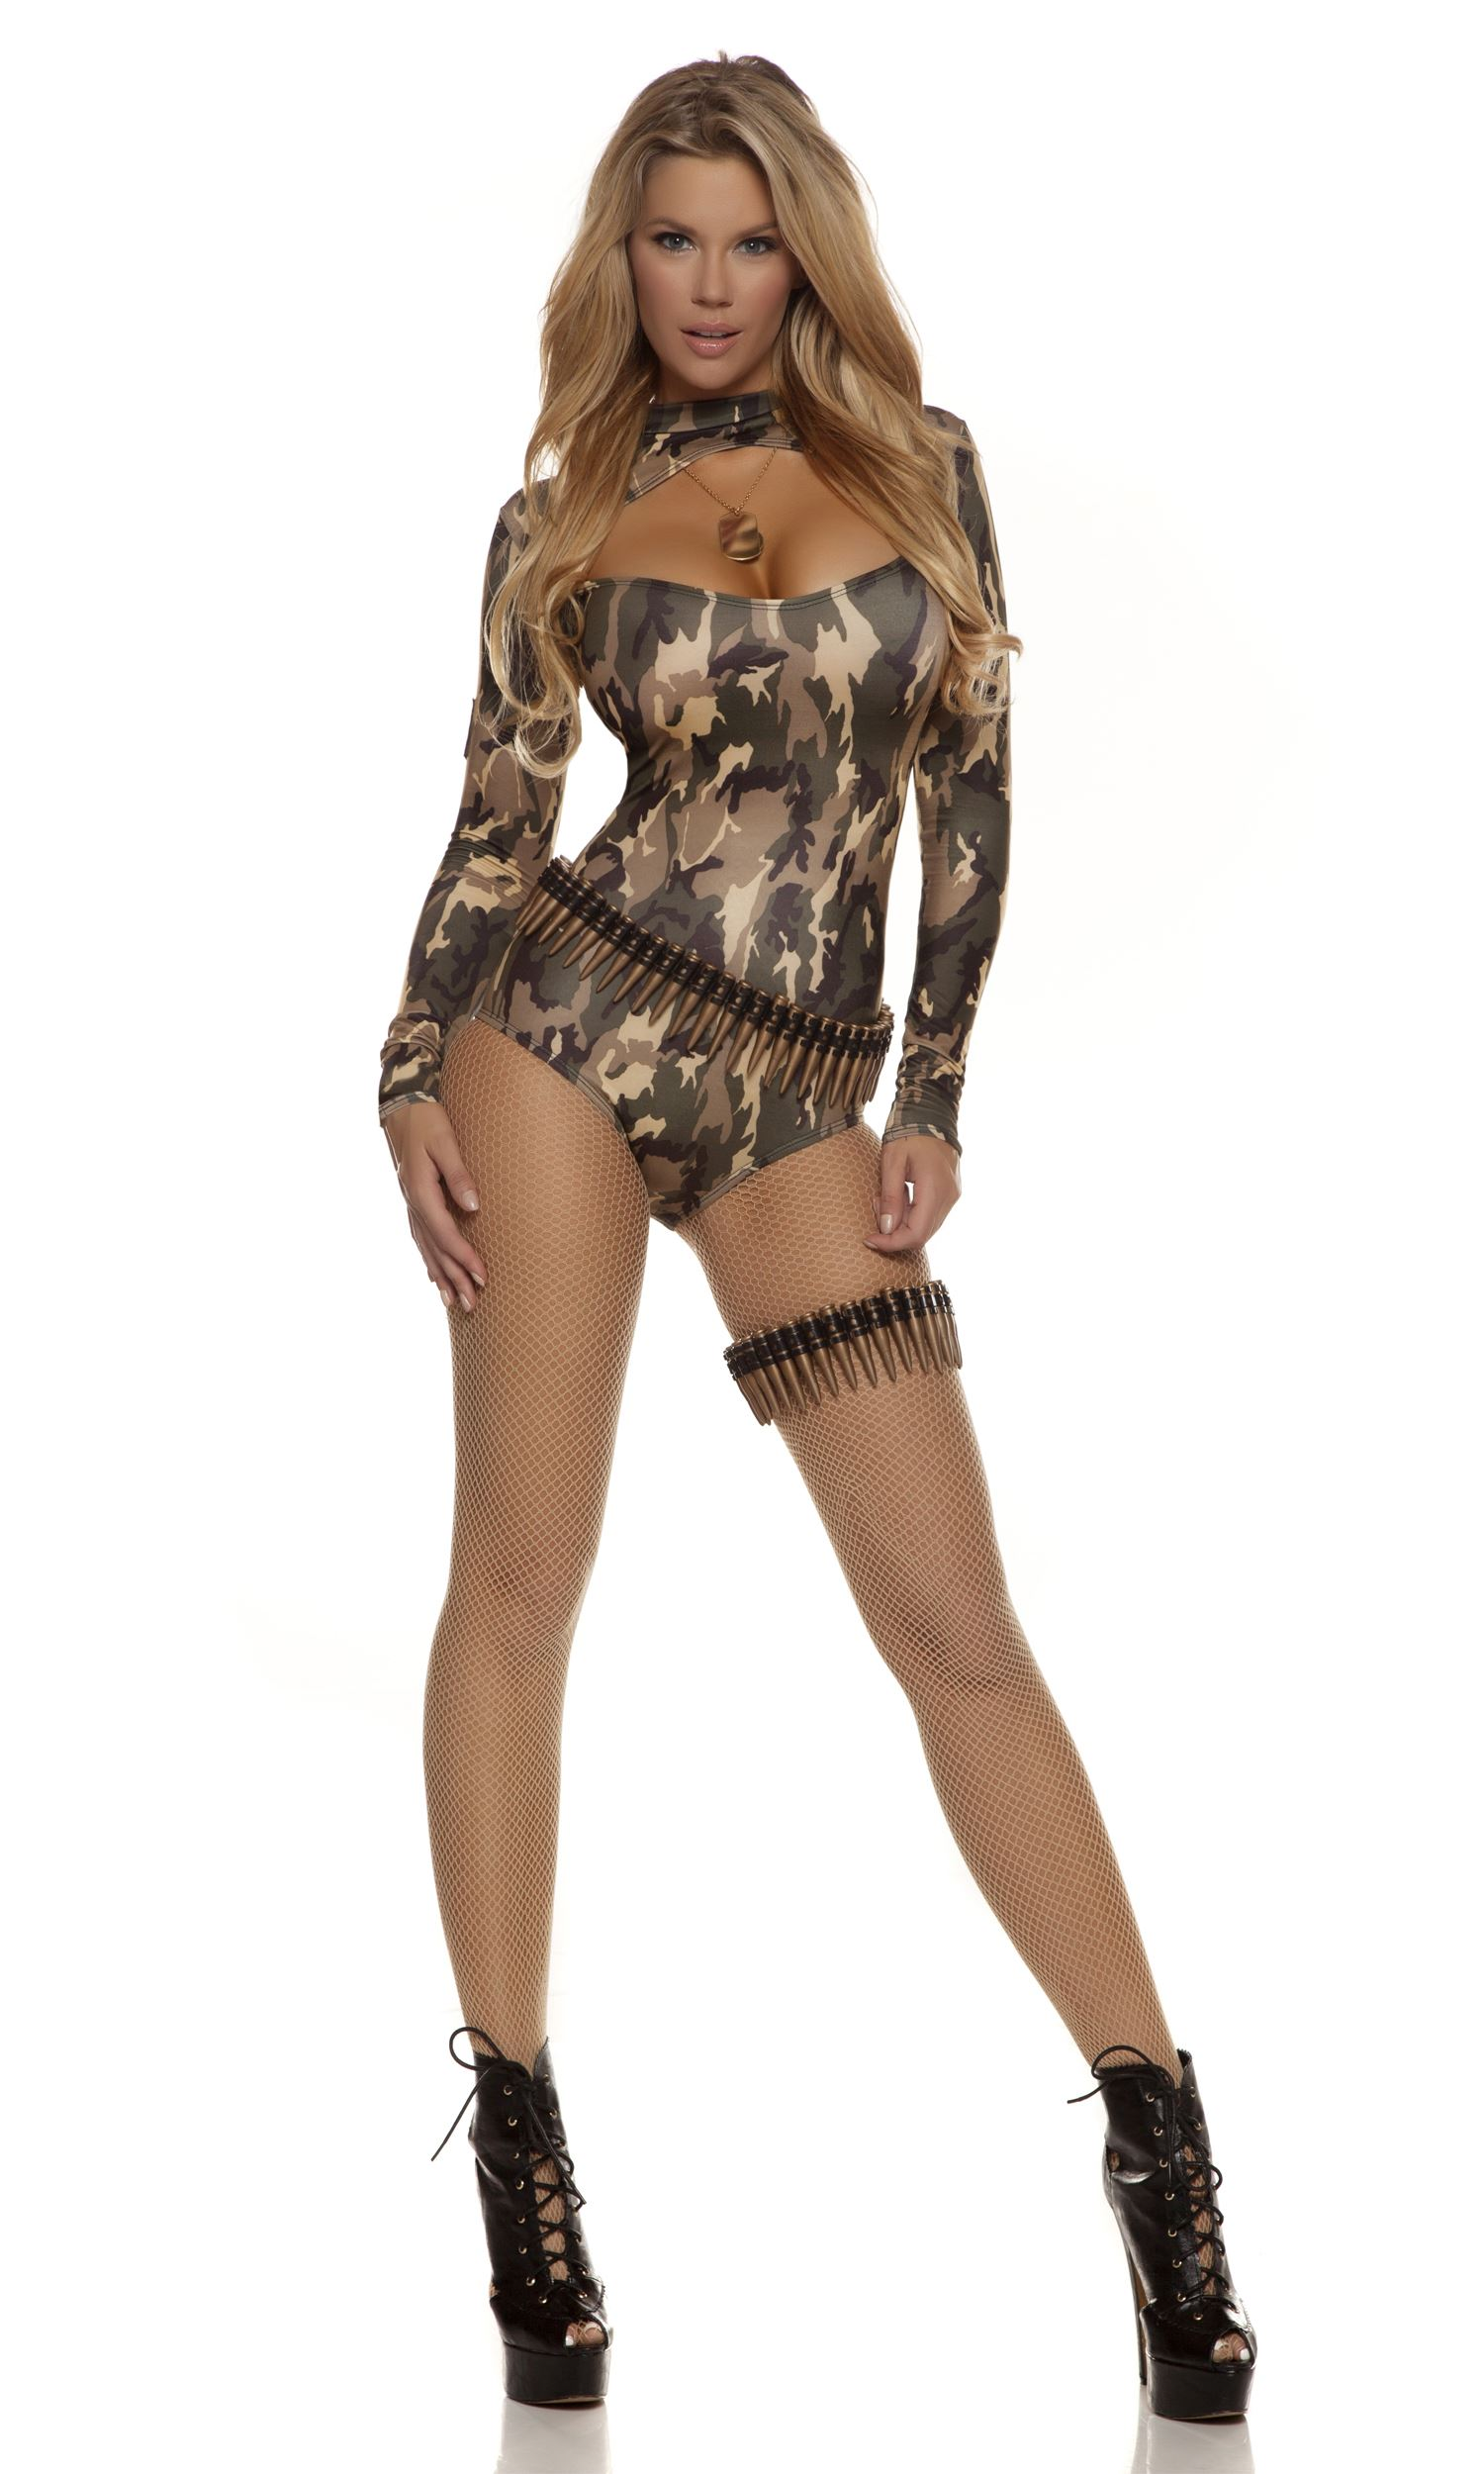 Forplay Halloween Costumes for Women eBay